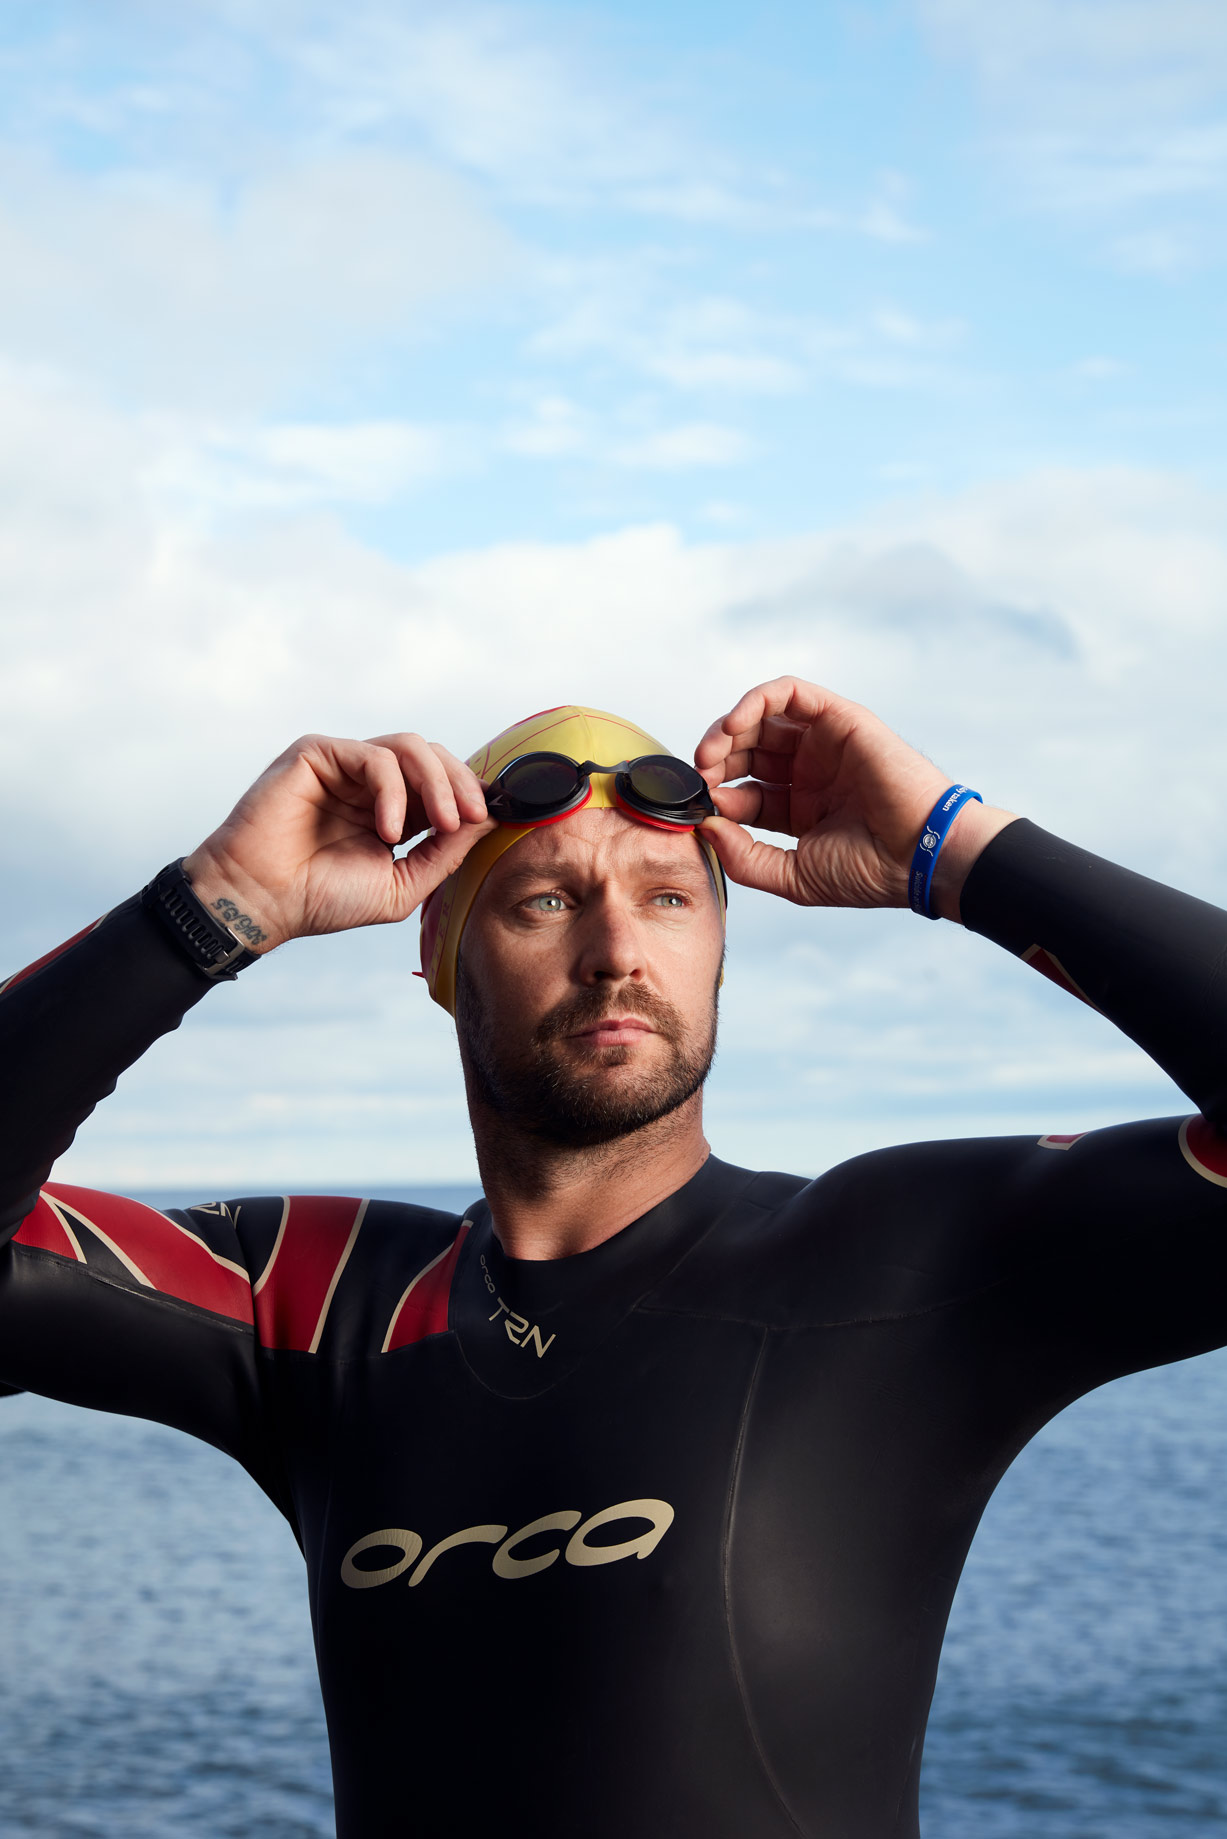 location portrait of triathlete